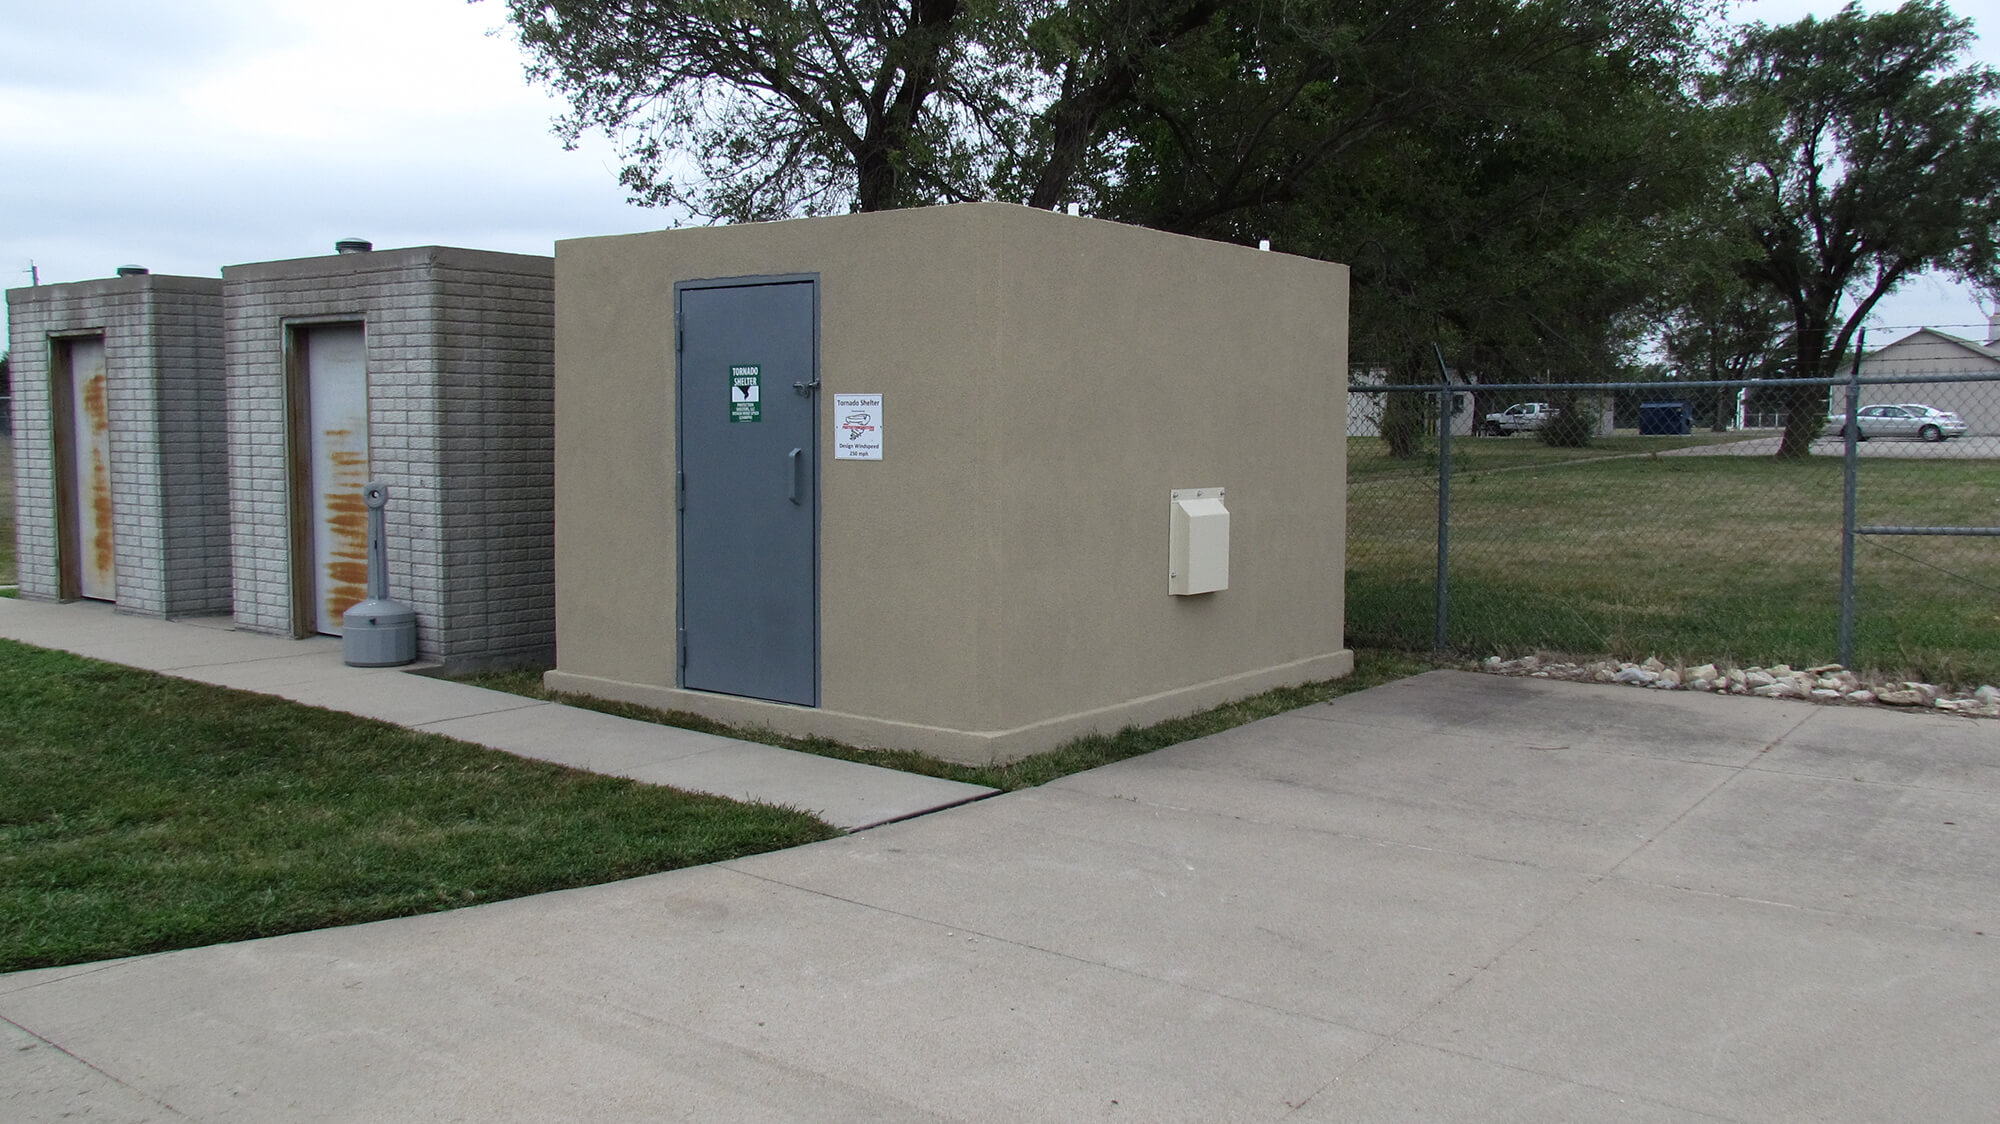 Protection Shelters community/group shelters have been built for clients of all industries ranging from schools, the Department of Energy, municipalities, housing authorities, mobile home parks, construction sites, and more.